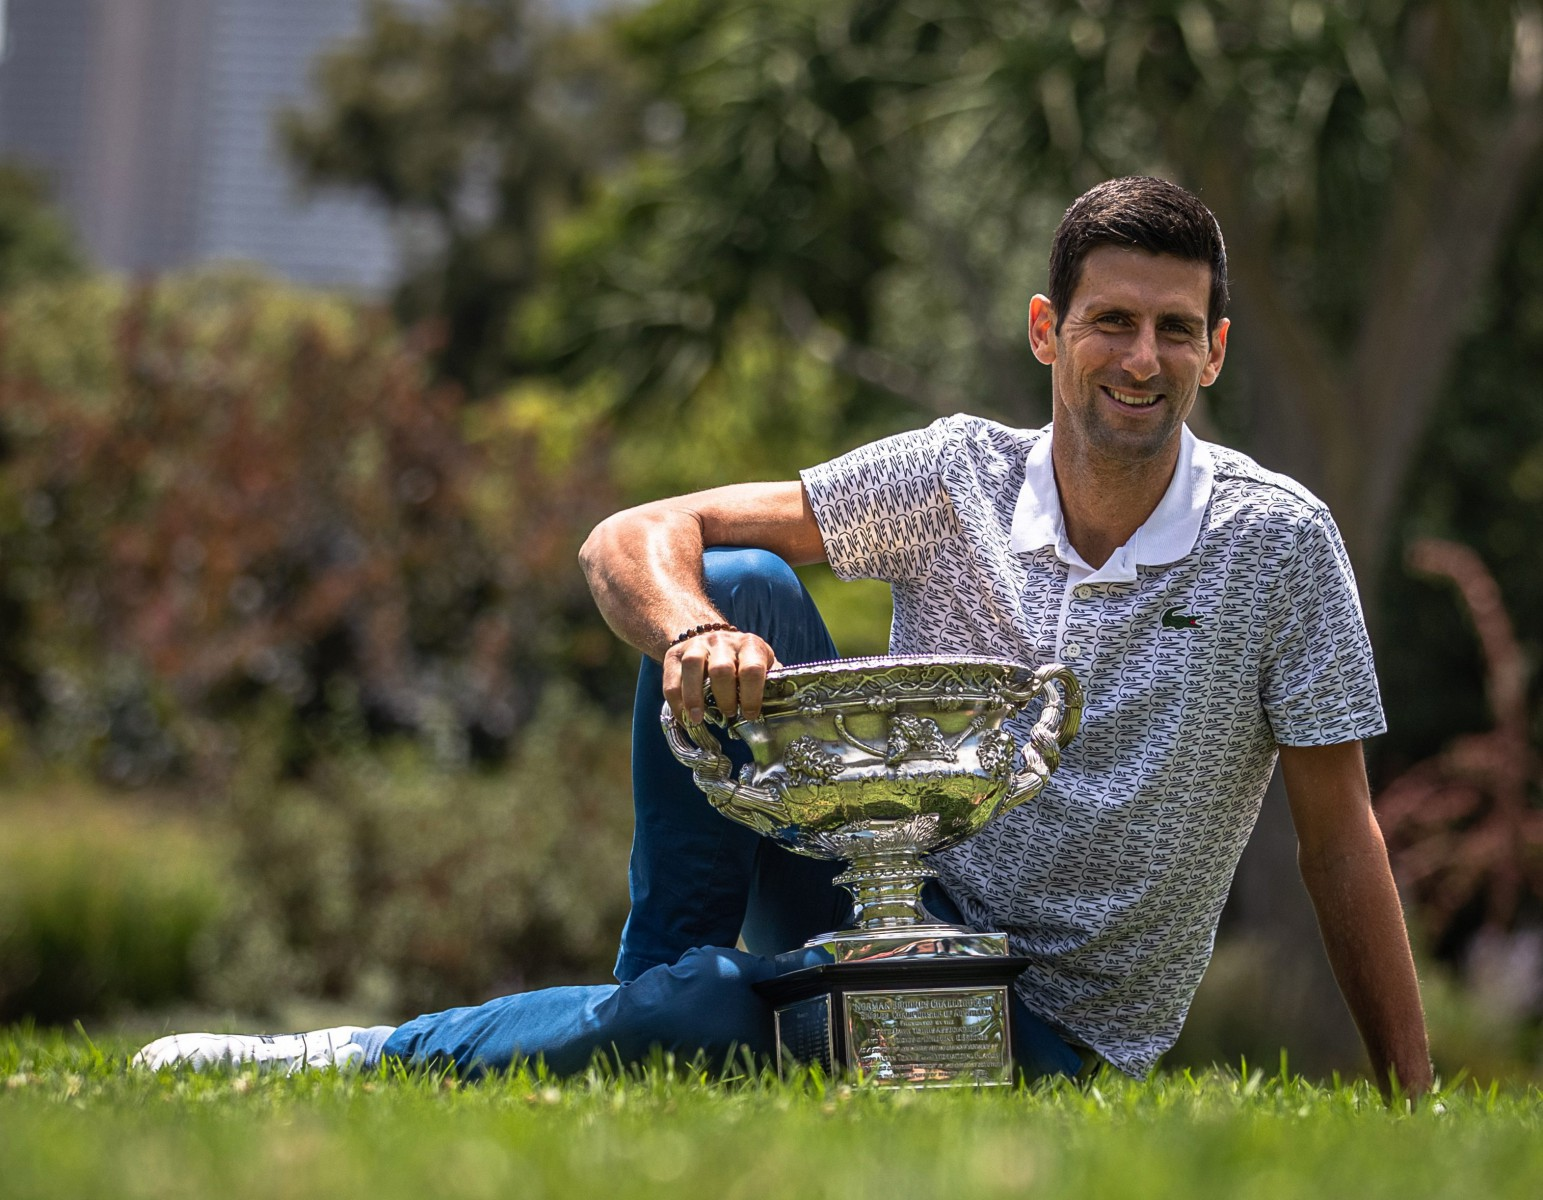 Djokovic posed with the Aussie Open crown for the eighth time after beating Dominic Thiem in Sunday's final